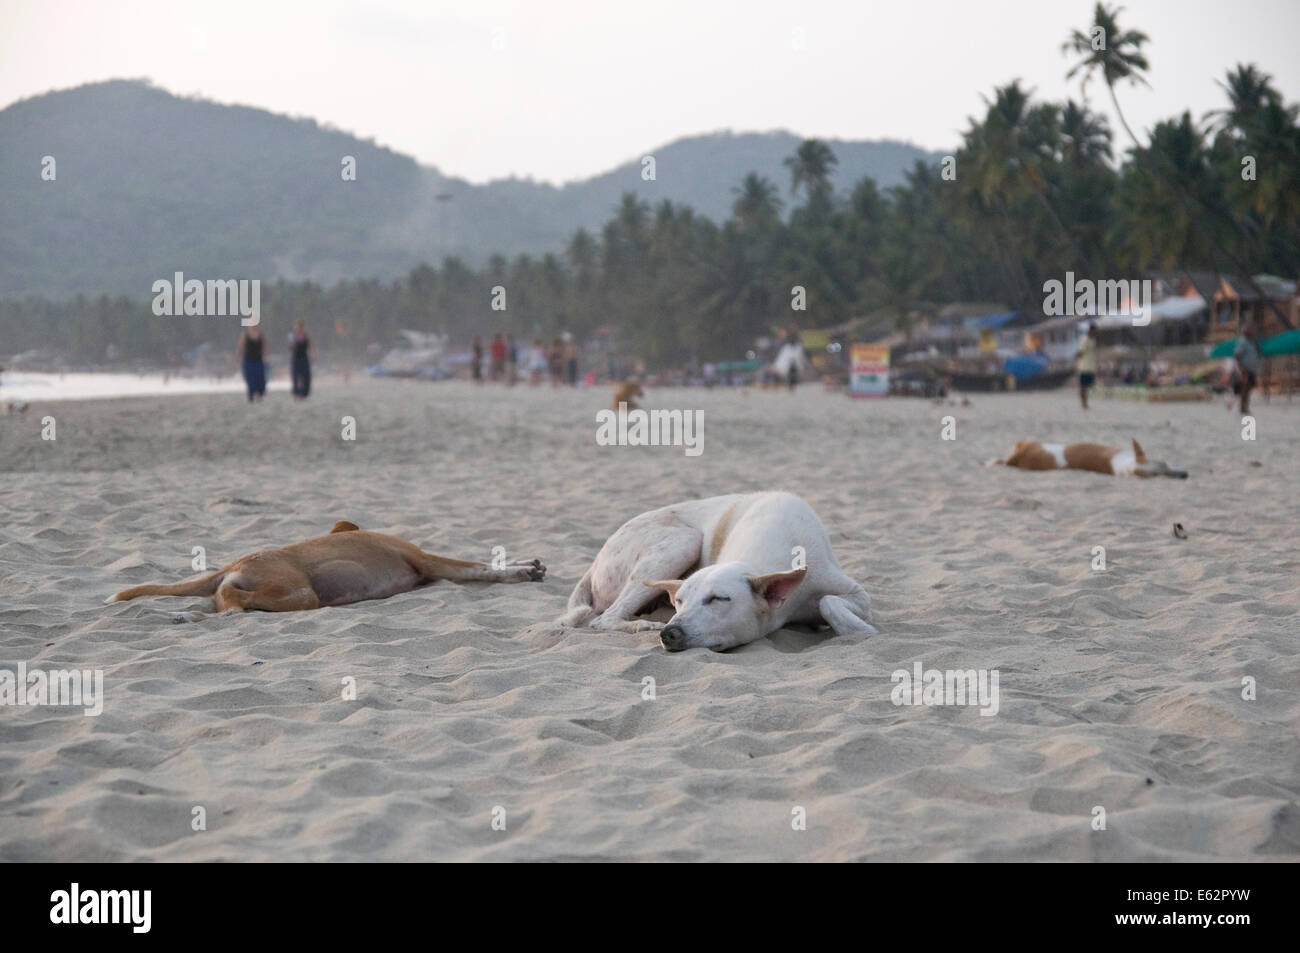 Beach dogs sleeping at Palolem Beach in Goa, India. - Stock Image